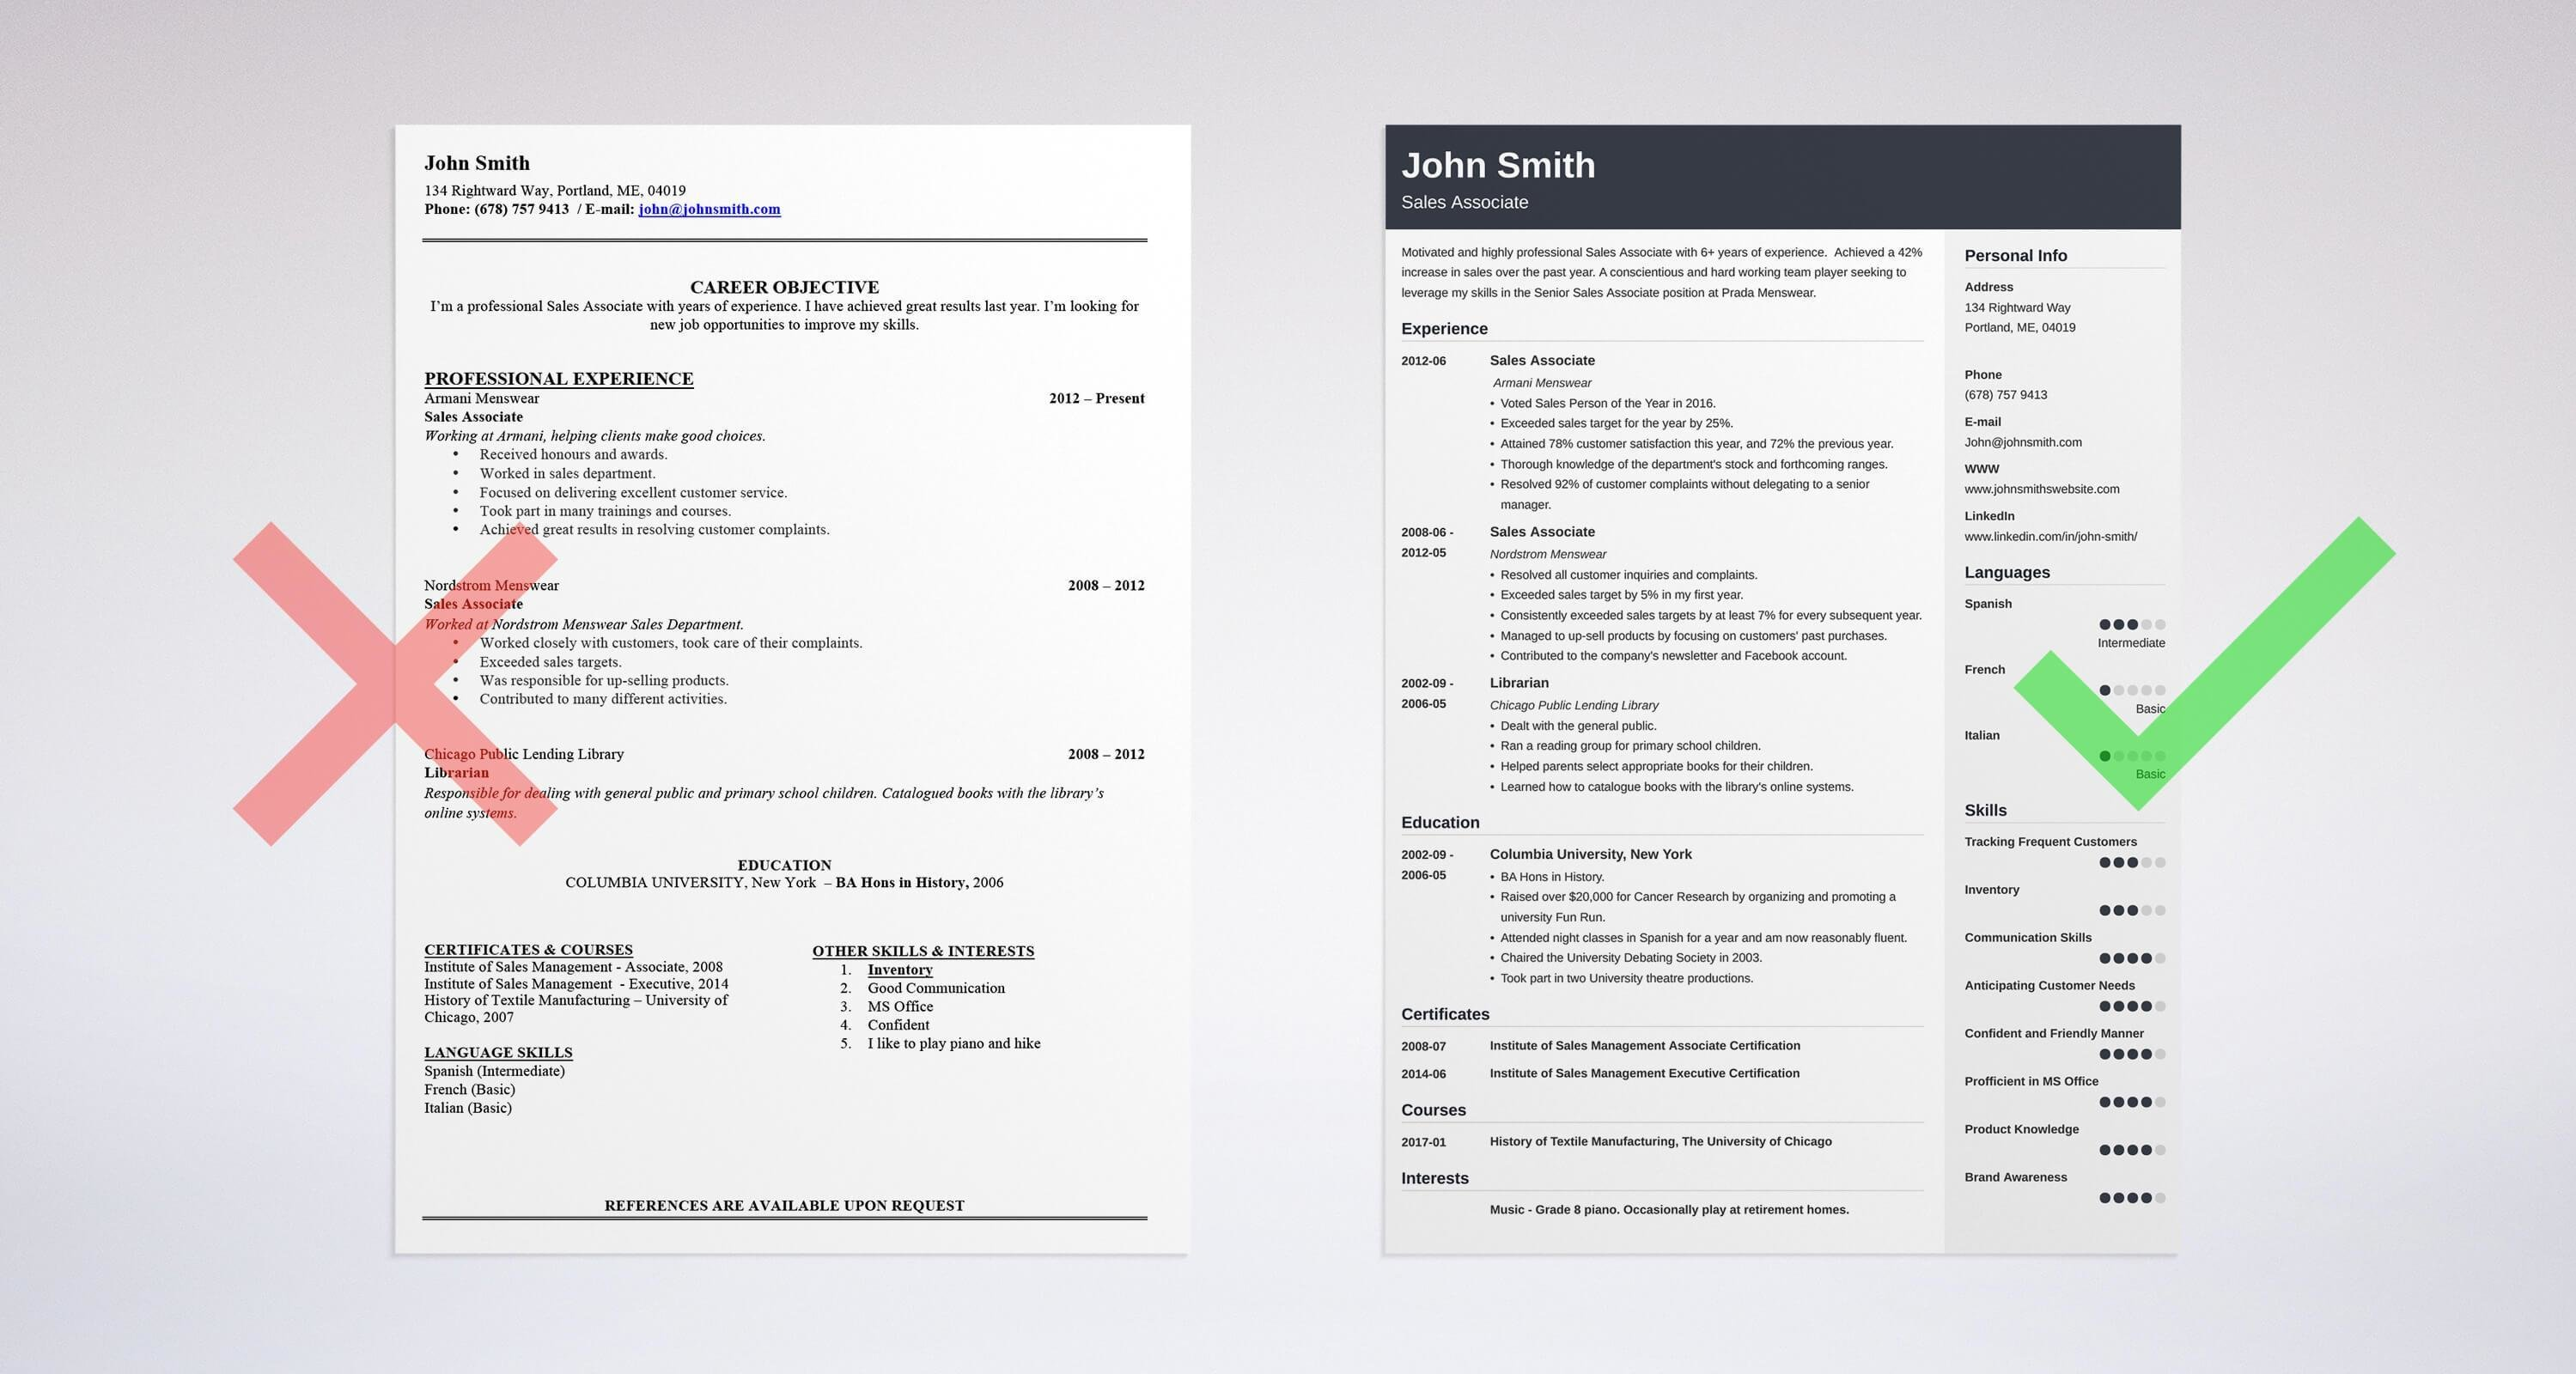 Charming Professional Resume With A Career Summary  Best Looking Resumes